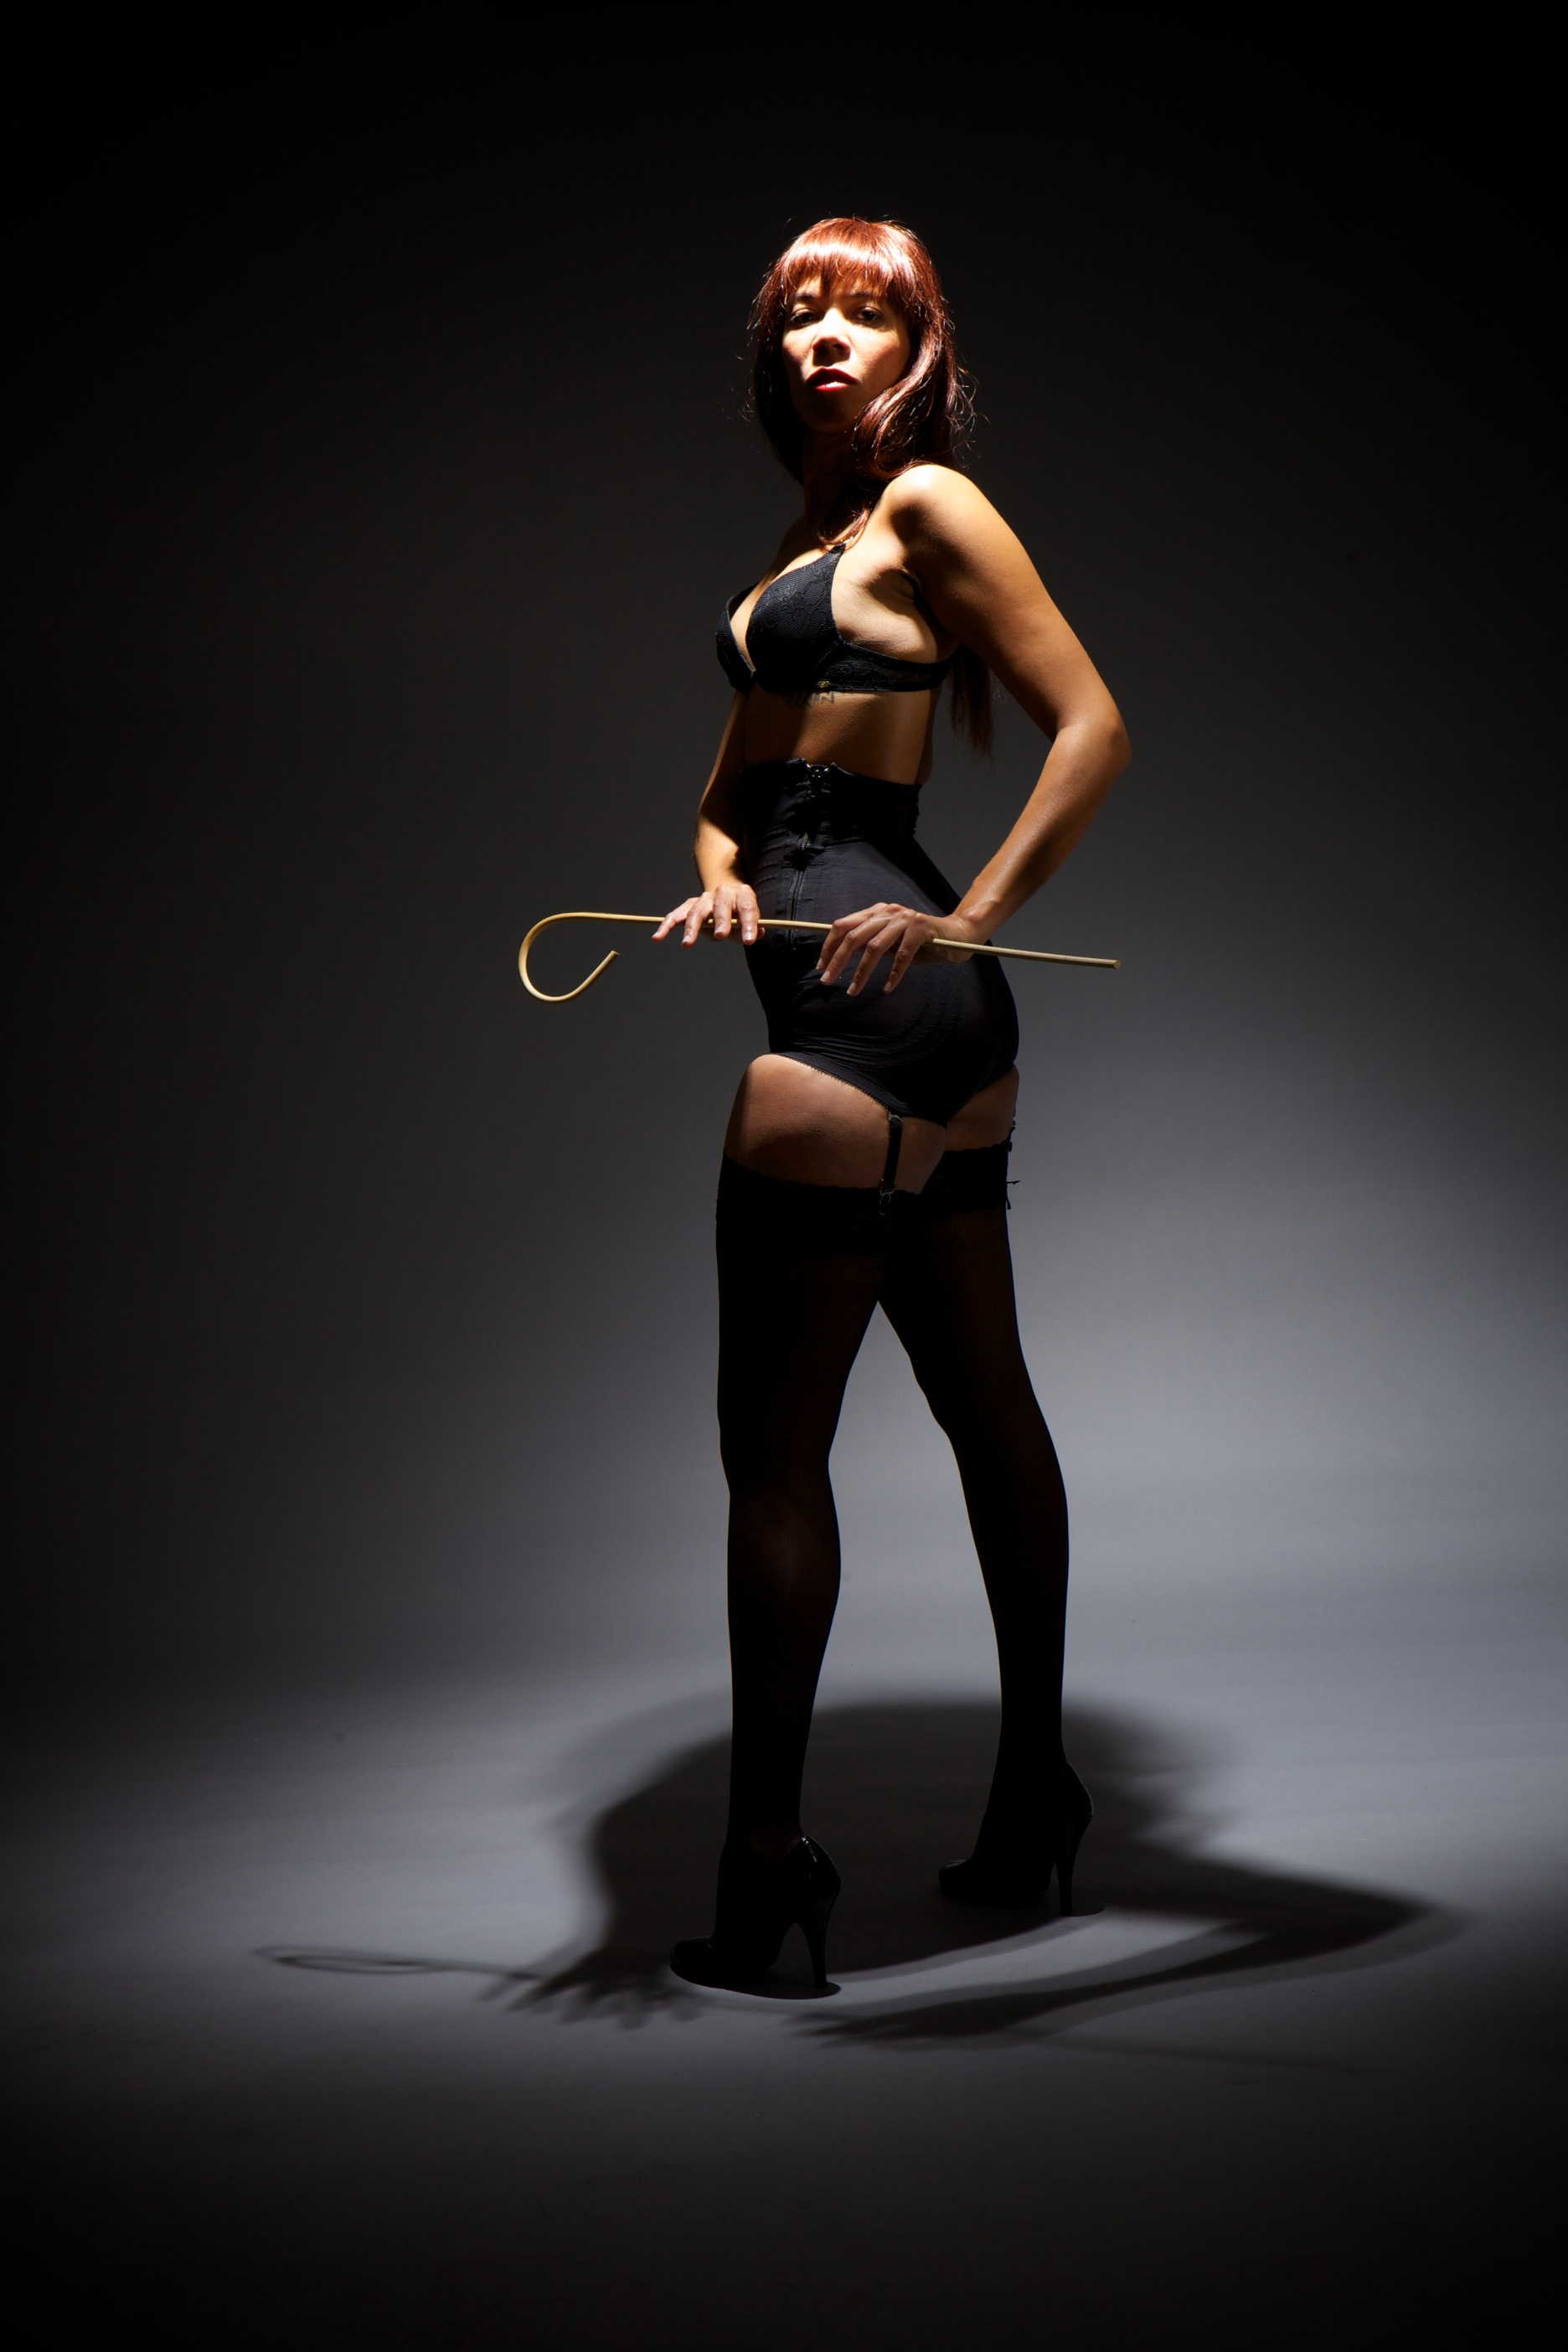 strict-caning-punishment-mistress-school-room-london-kings-cross